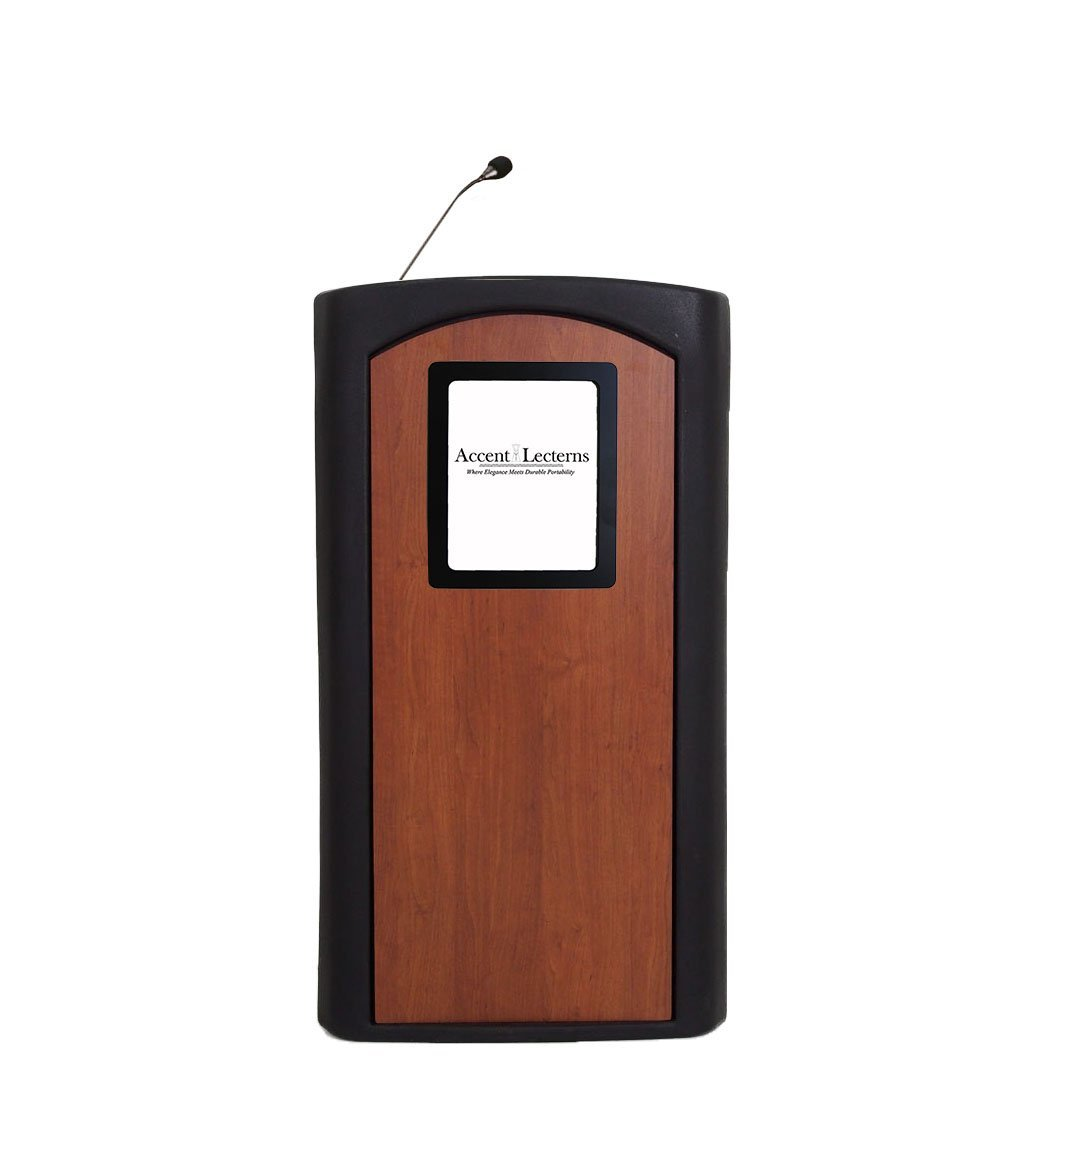 Accent Classic Integrator Vertical Logo Lectern Podium, Black - Dan James Original